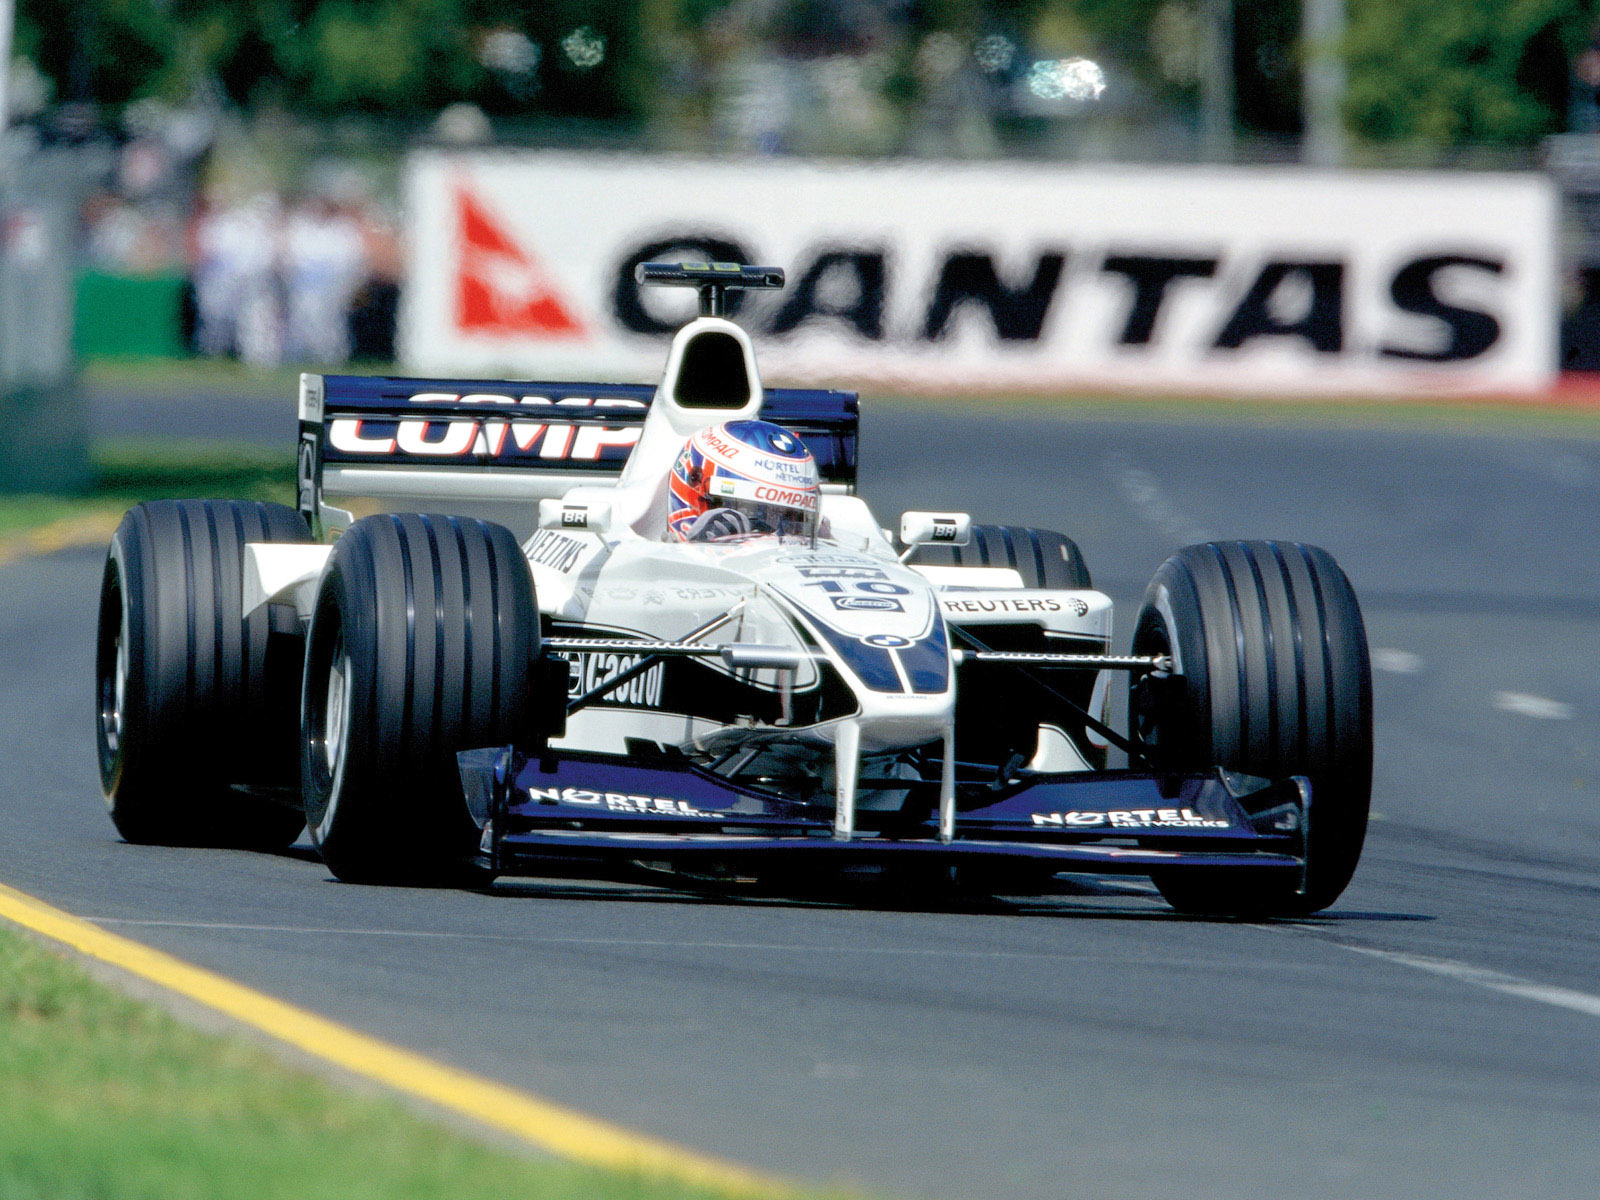 williams_bmw-fw22-2000_r14_jpg.jpg